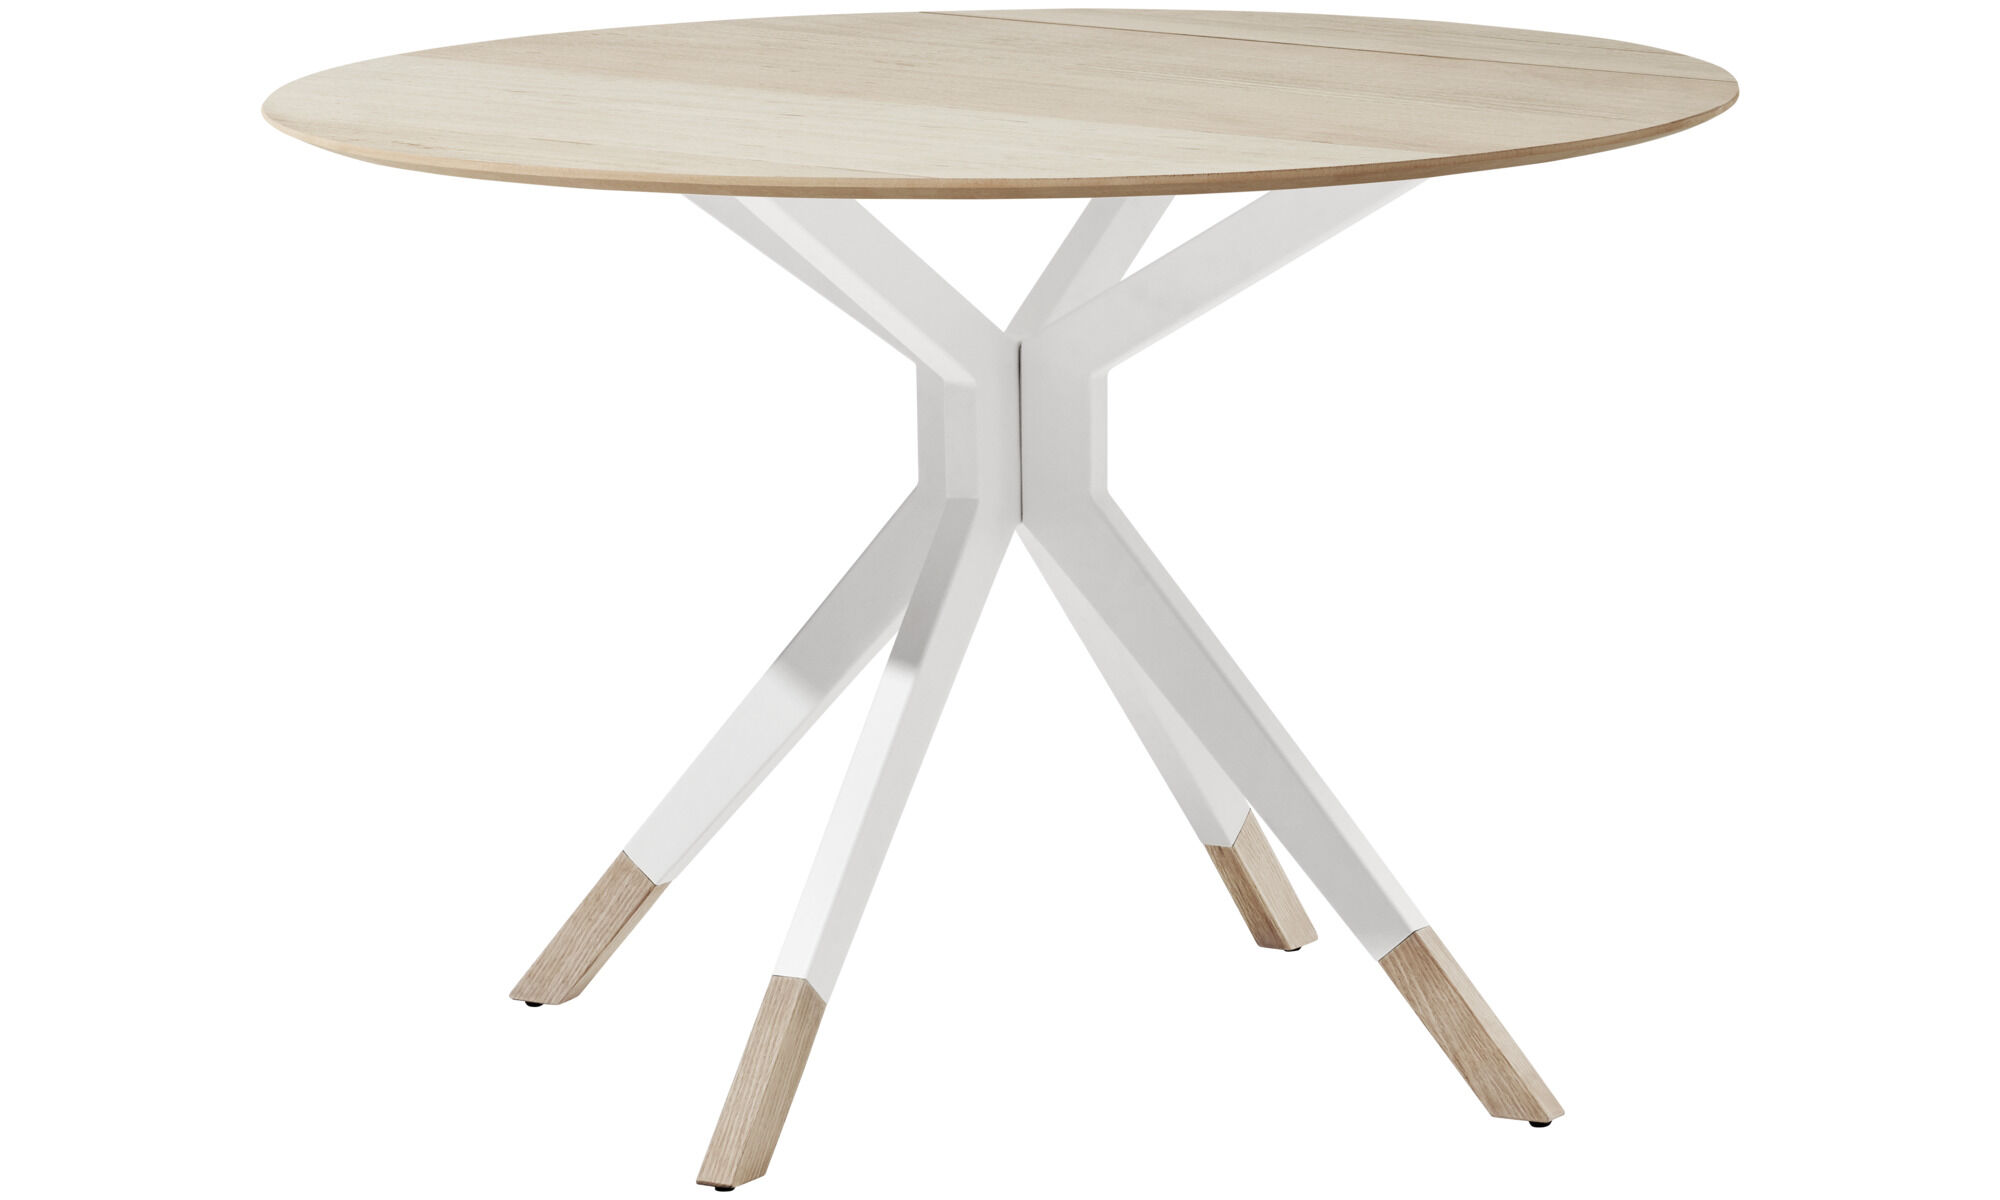 Dining Tables   Billund Table   Round   Brown   Oak